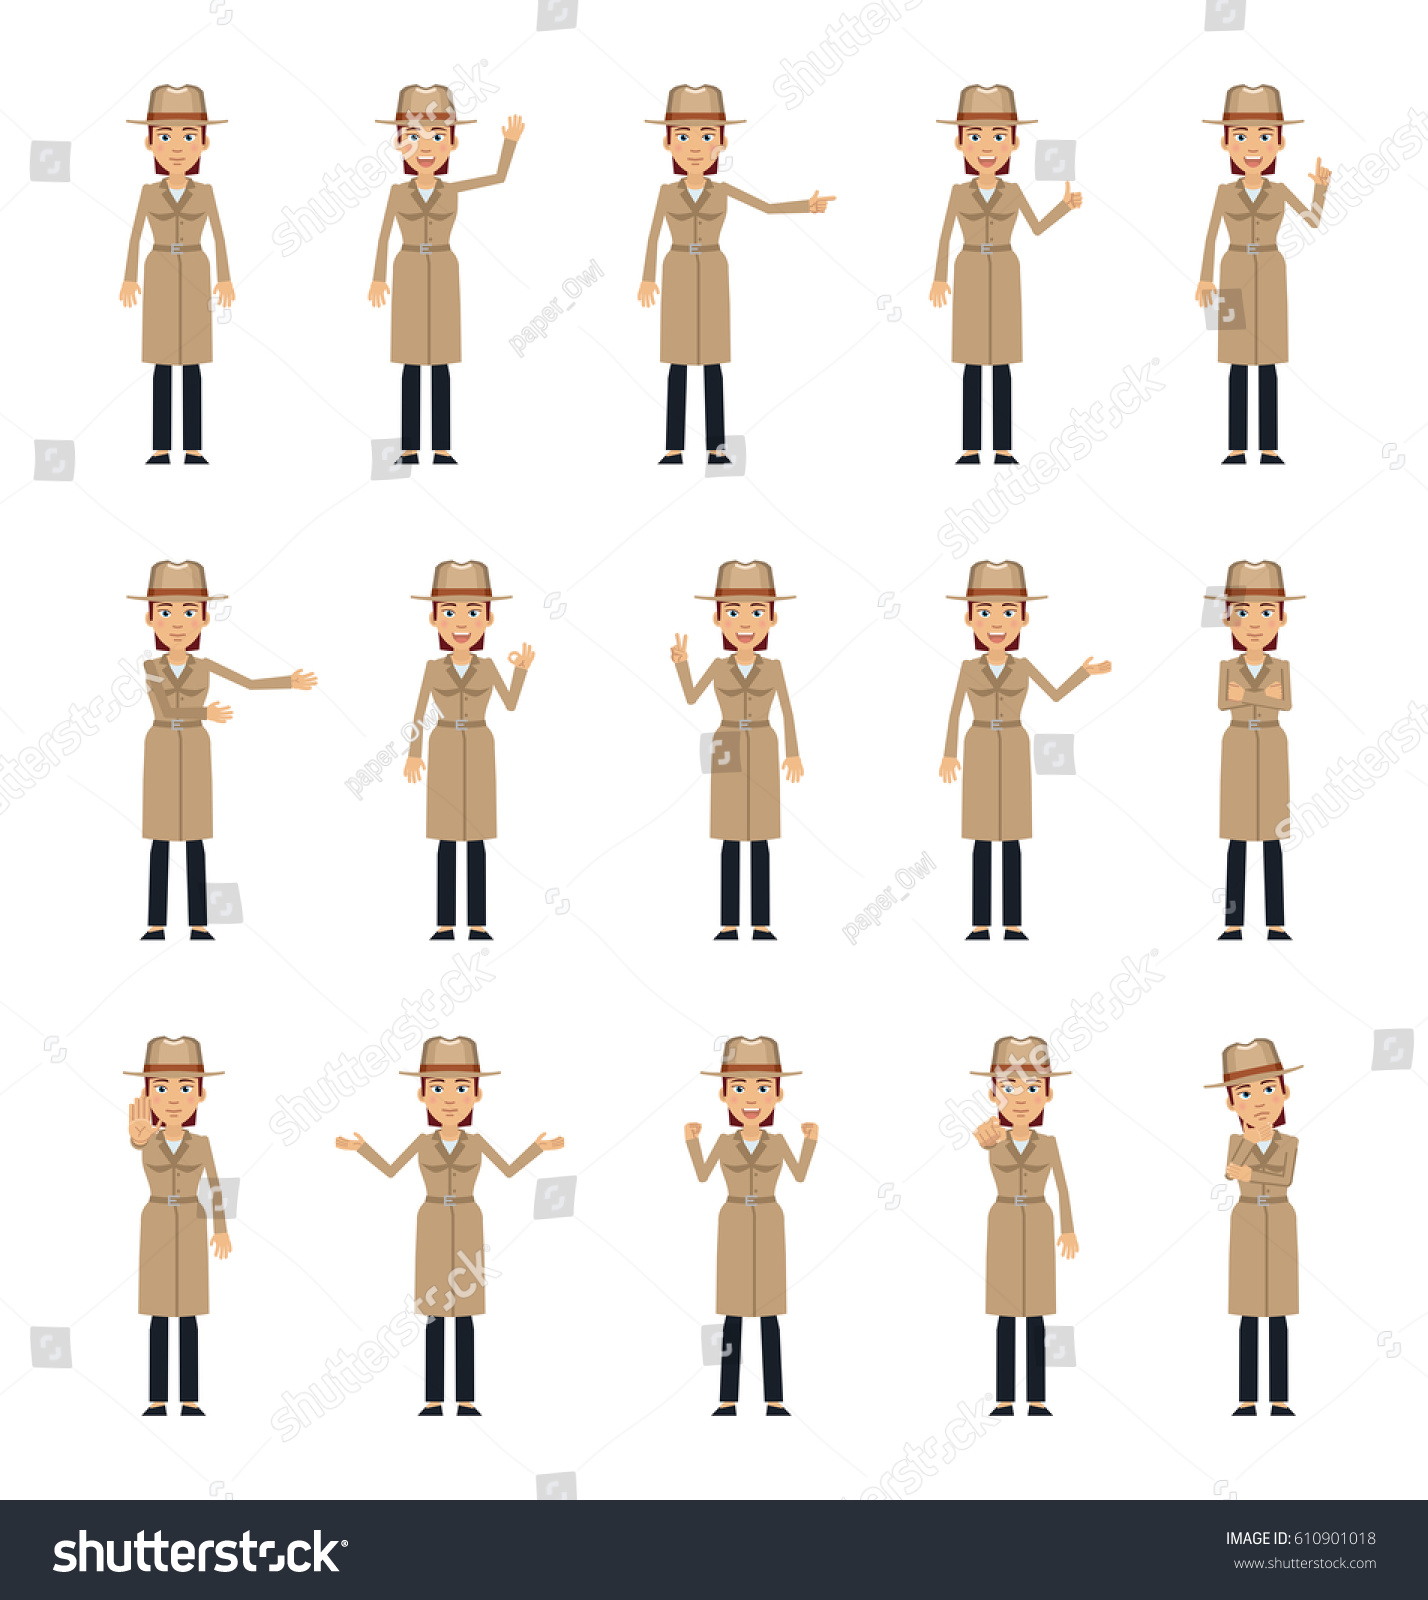 royalty free set of female detective characters 610901018 stock